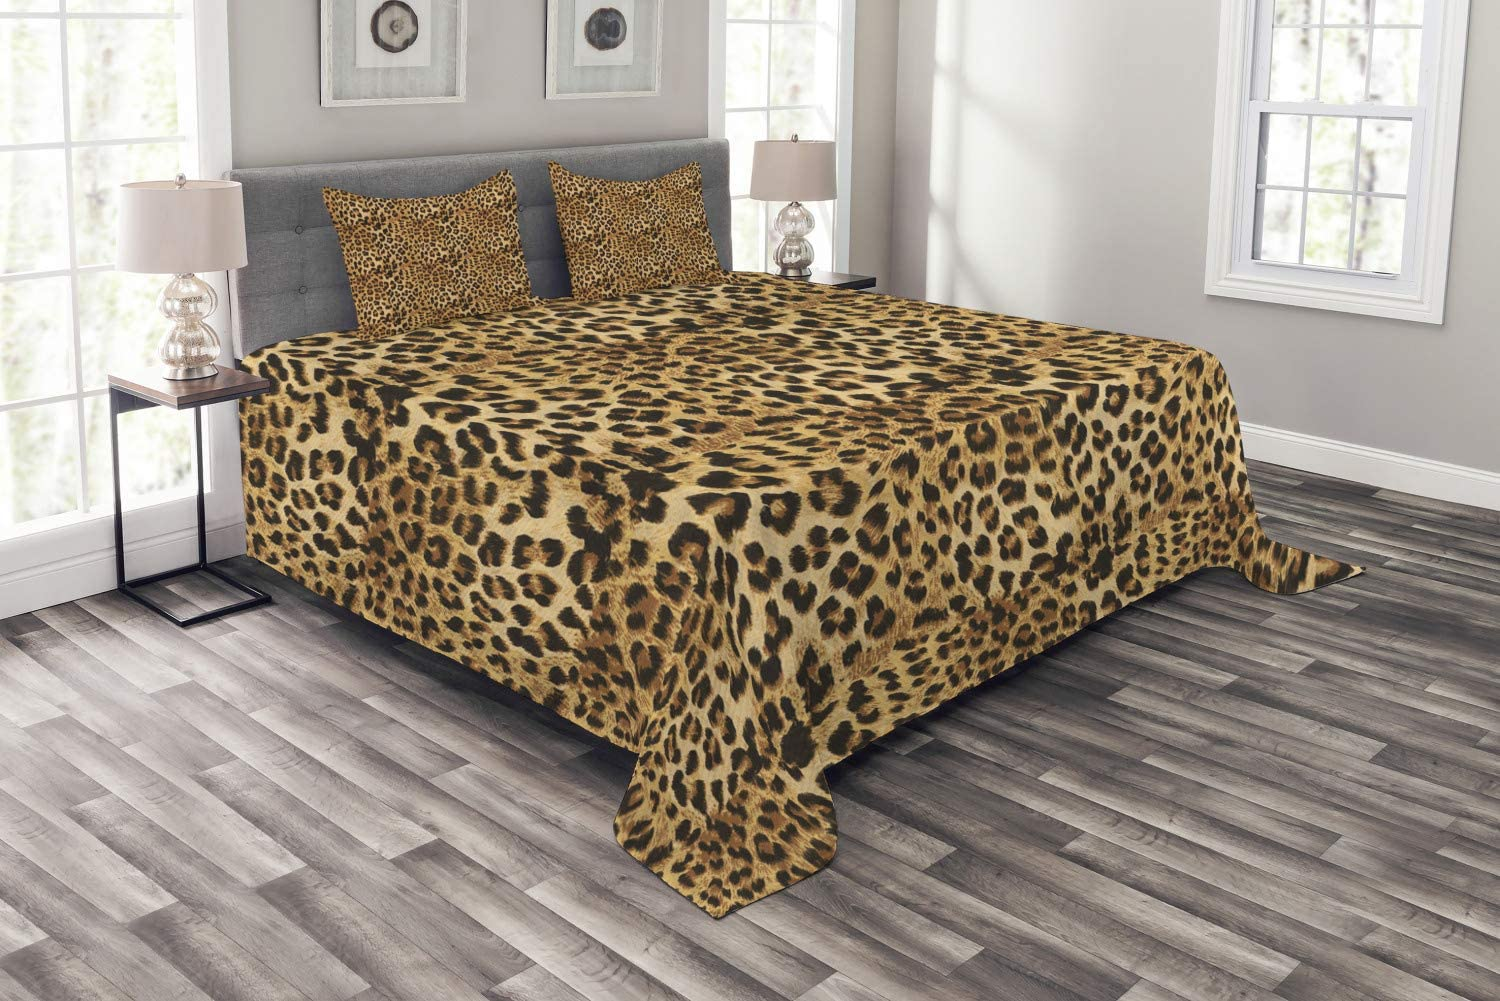 Ambesonne Brown Bedspread, Leopard Print Animal Skin Digital Printed Wild Safari Themed Spotted Pattern Art, Decorative Quilted 3 Piece Coverlet Set with 2 Pillow Shams, Queen Size, Brown